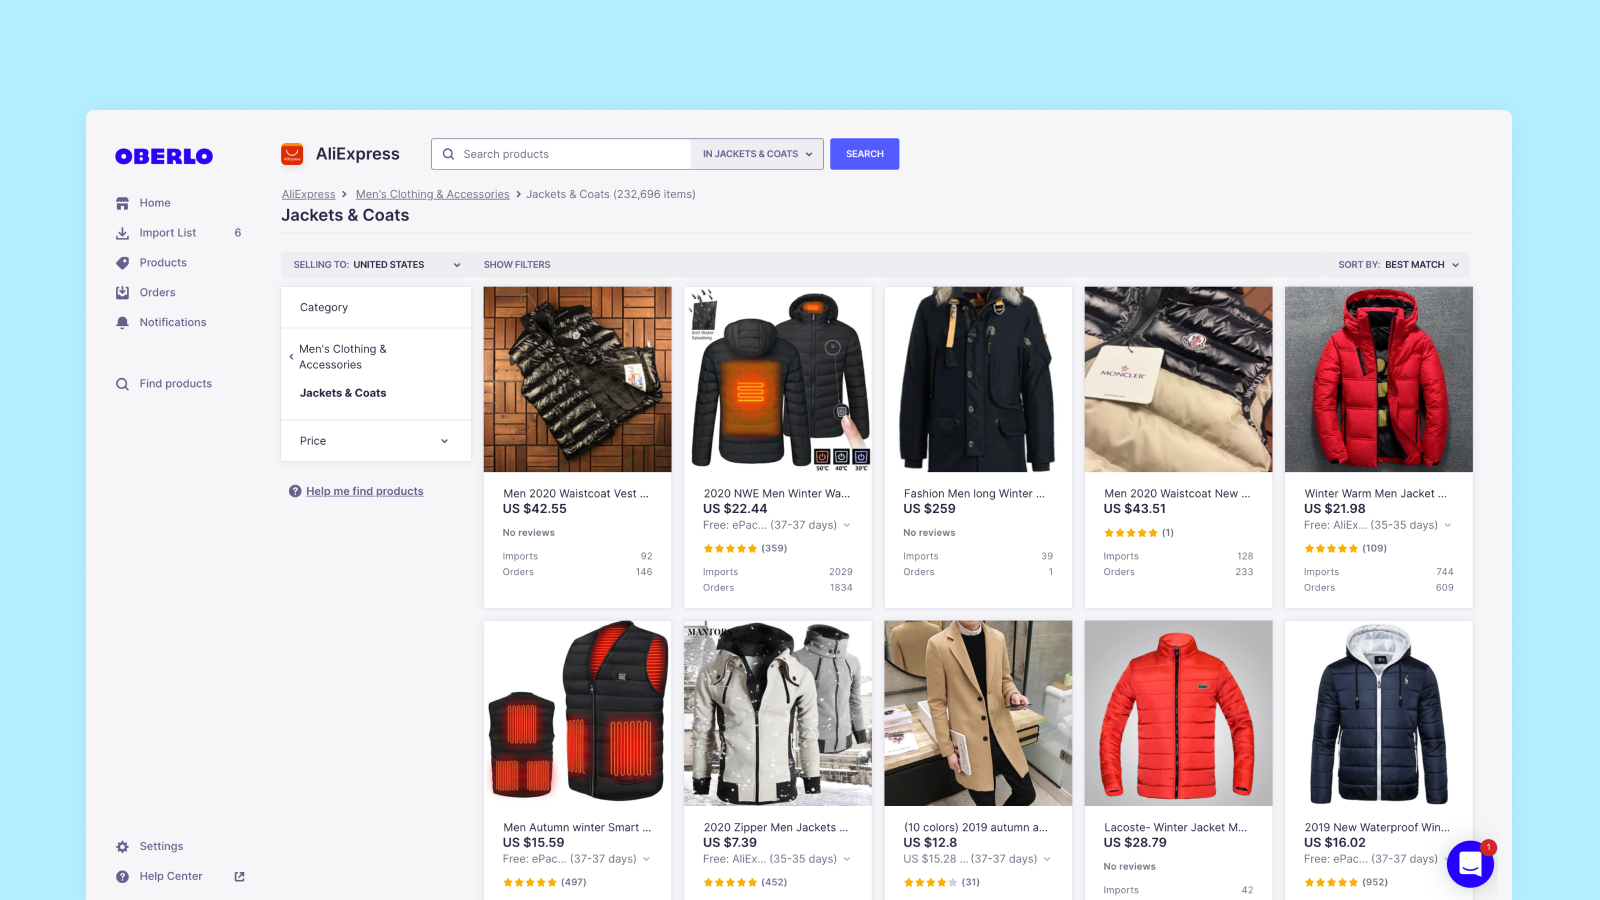 Dropshipping Sources: Oberlo